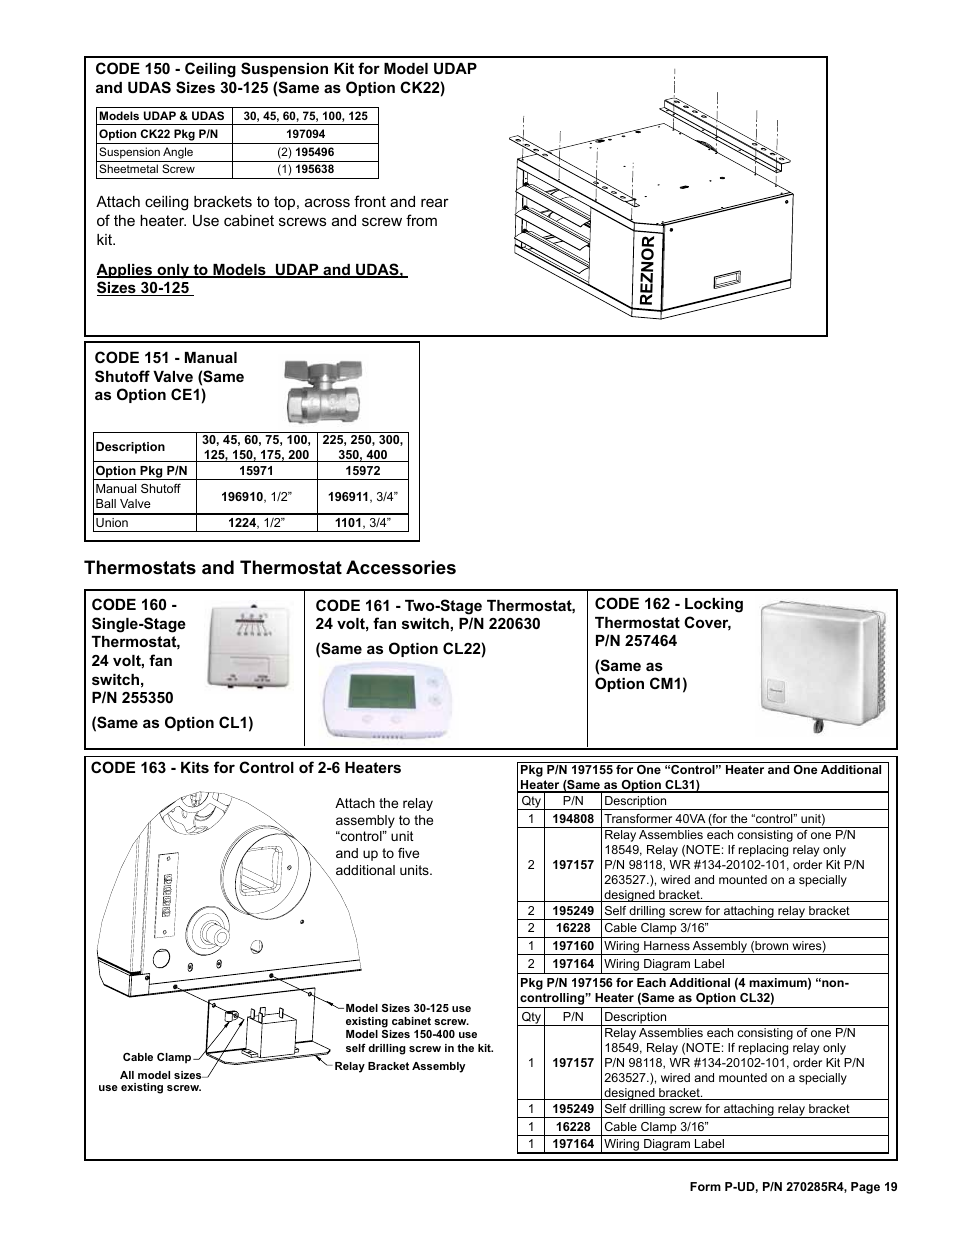 reznor udbp parts manuals page19 reznor heater wiring diagram green heat infrared heater wire Reznor F100 Wiring Diagram at crackthecode.co